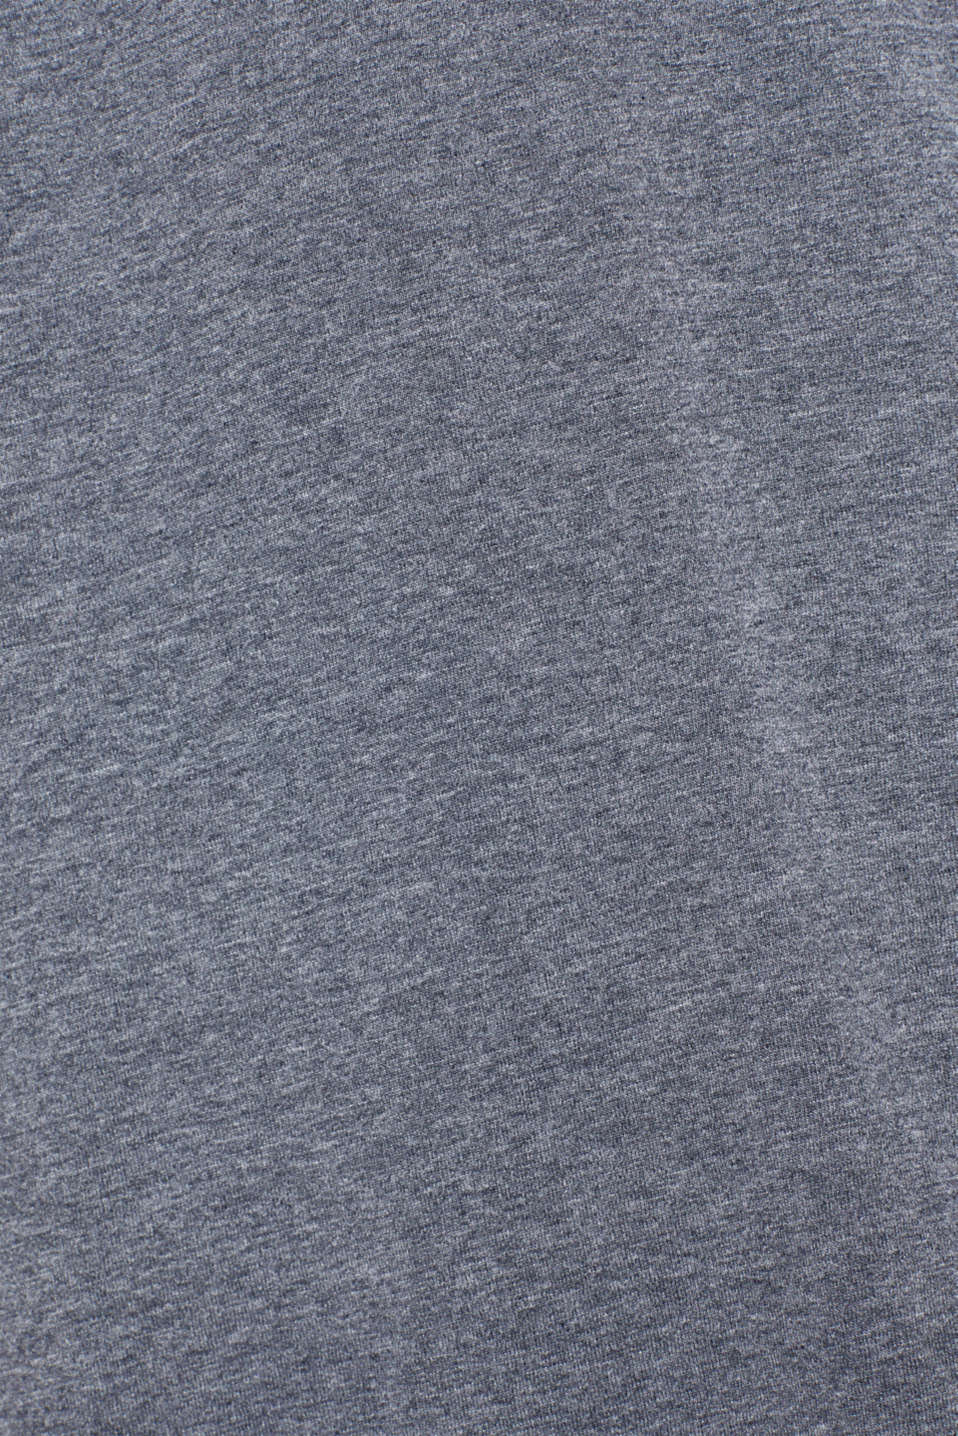 Jersey nightshirt with a print, NAVY, detail image number 4